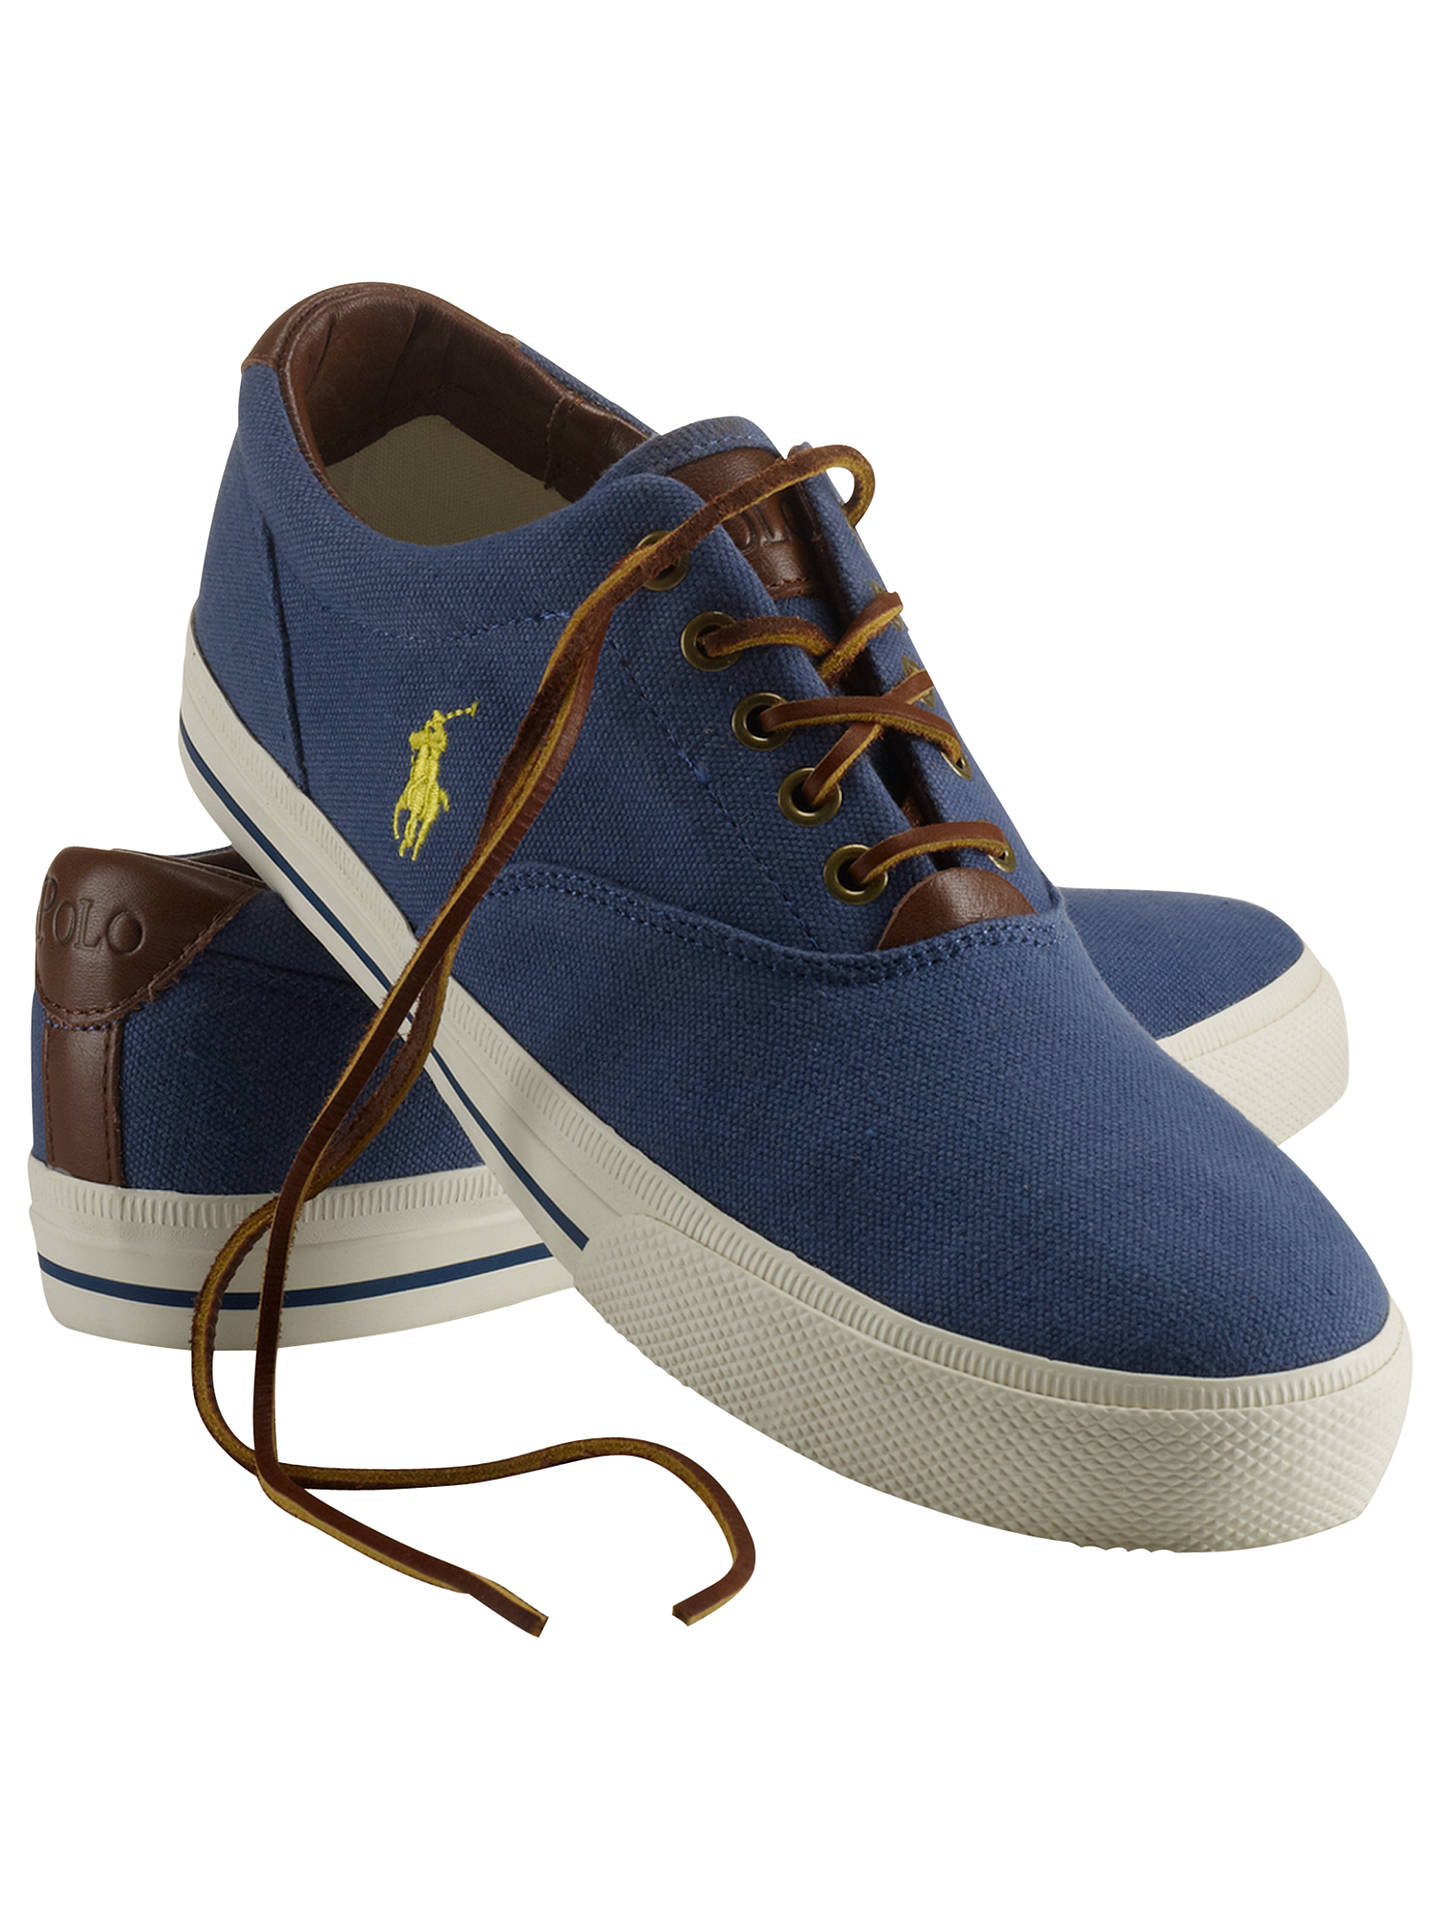 0867cf715c Polo Ralph Lauren Vaughn Canvas and Leather Trainers, Aviator Navy ...